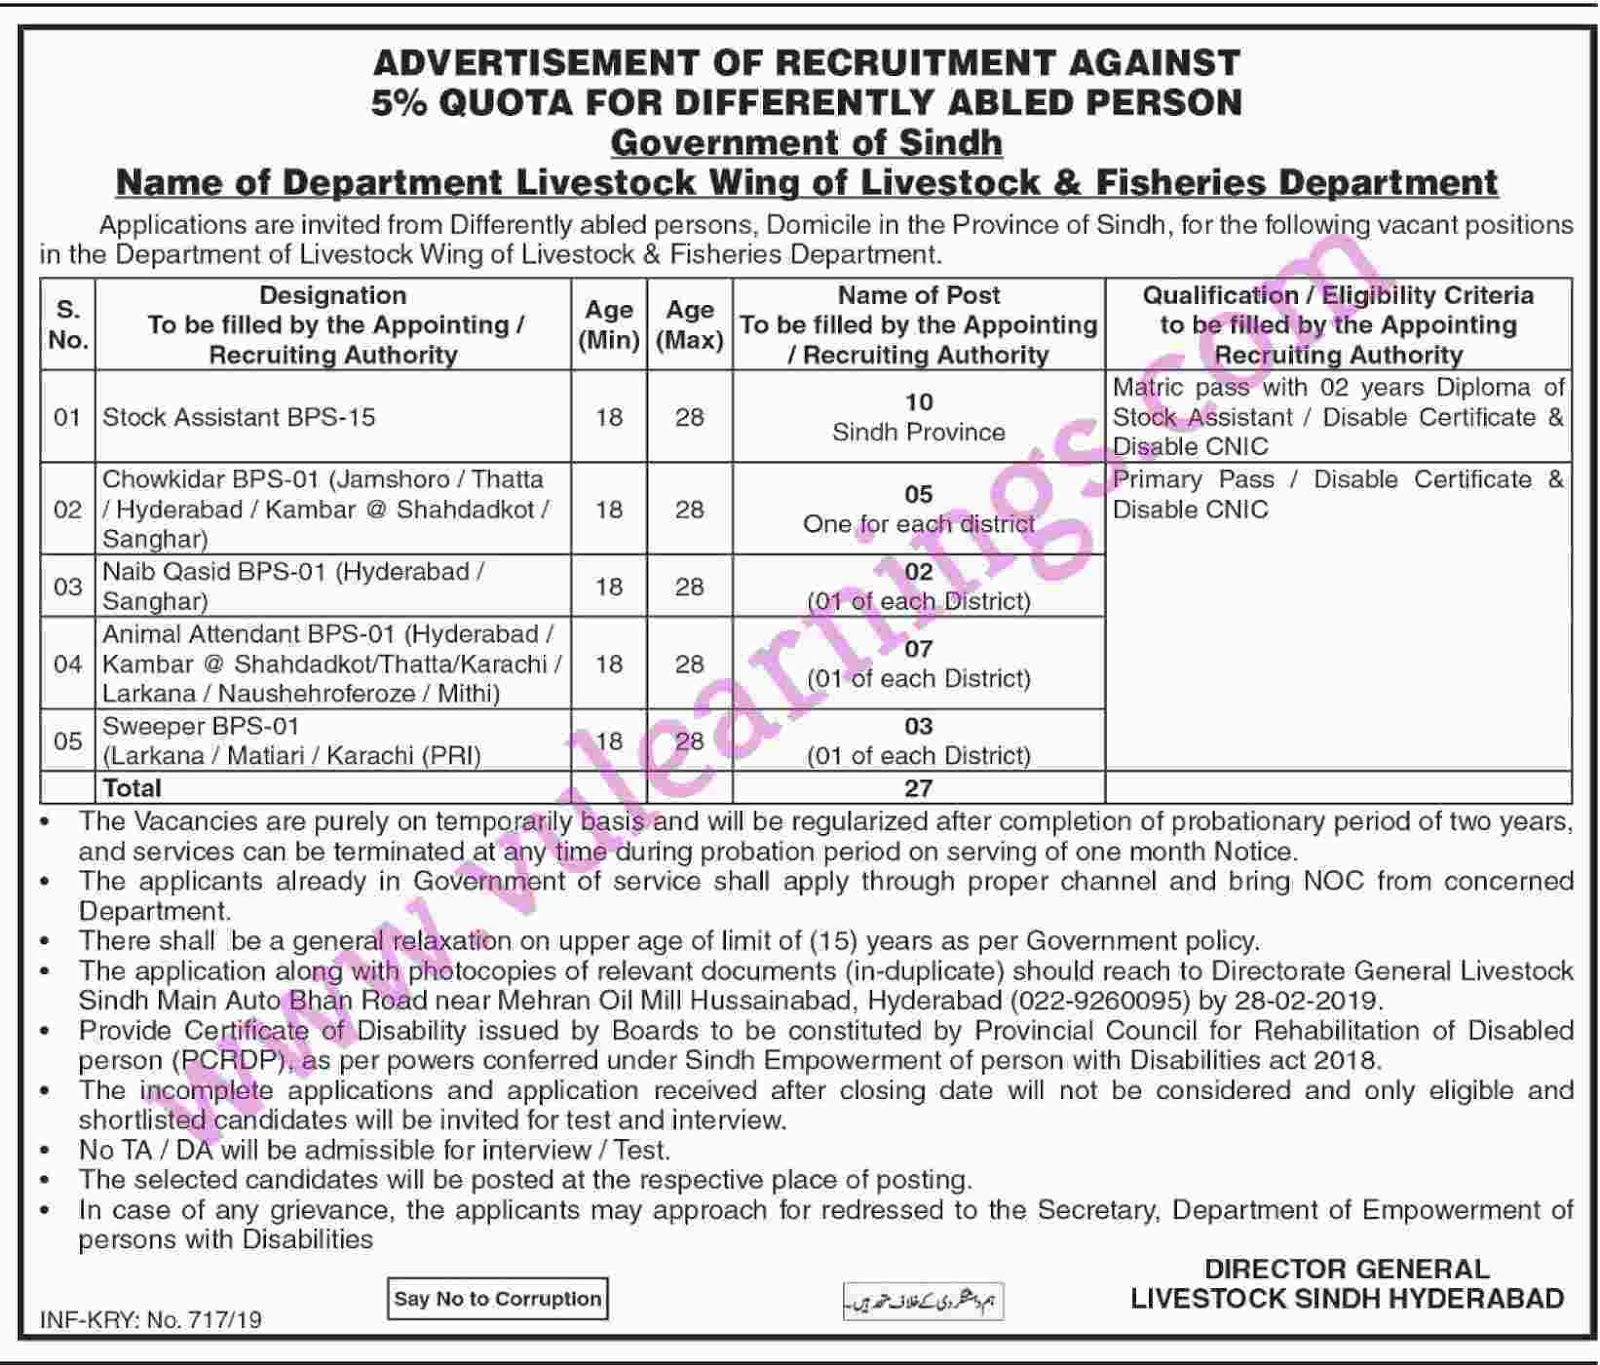 Job in Livestock & Fisheries Department